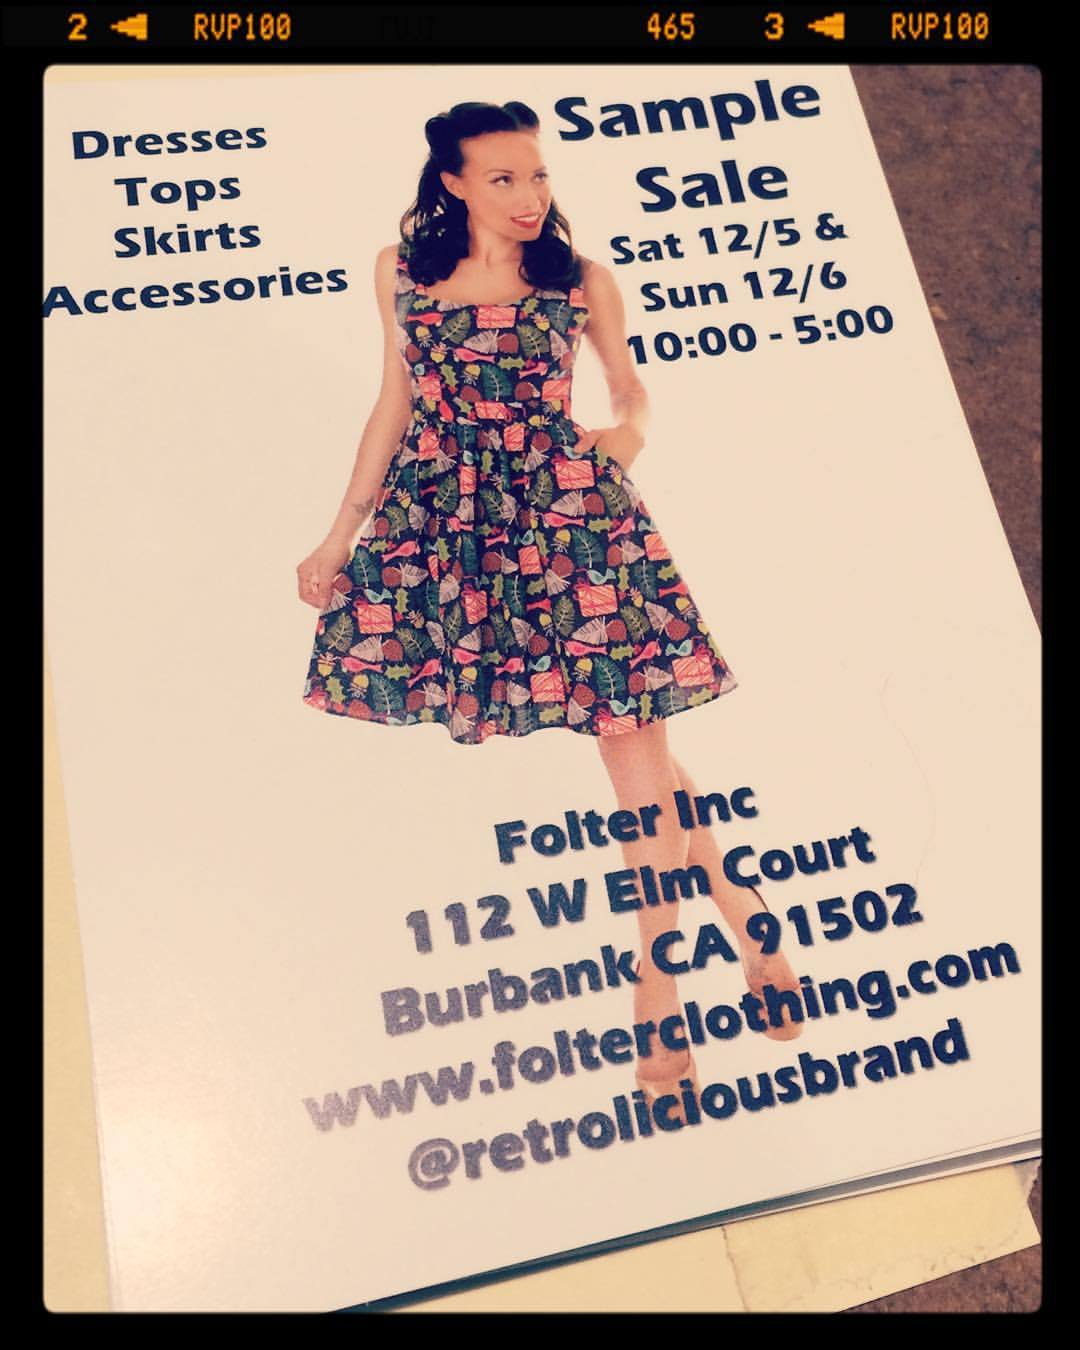 Sample sale next week with @retroliciousbrand , you don't want to miss out!                                              —————————#retrolicious #folterclothing #follterfamily #dress #samplesale #Burbank #losangeles #losangelesfashion #smallbusinesssaturday #smallbusiness #retro #vintagestyle #pinup #pretty #muah #mikepradofoto  #nunezphotography  (at Burbank, California)